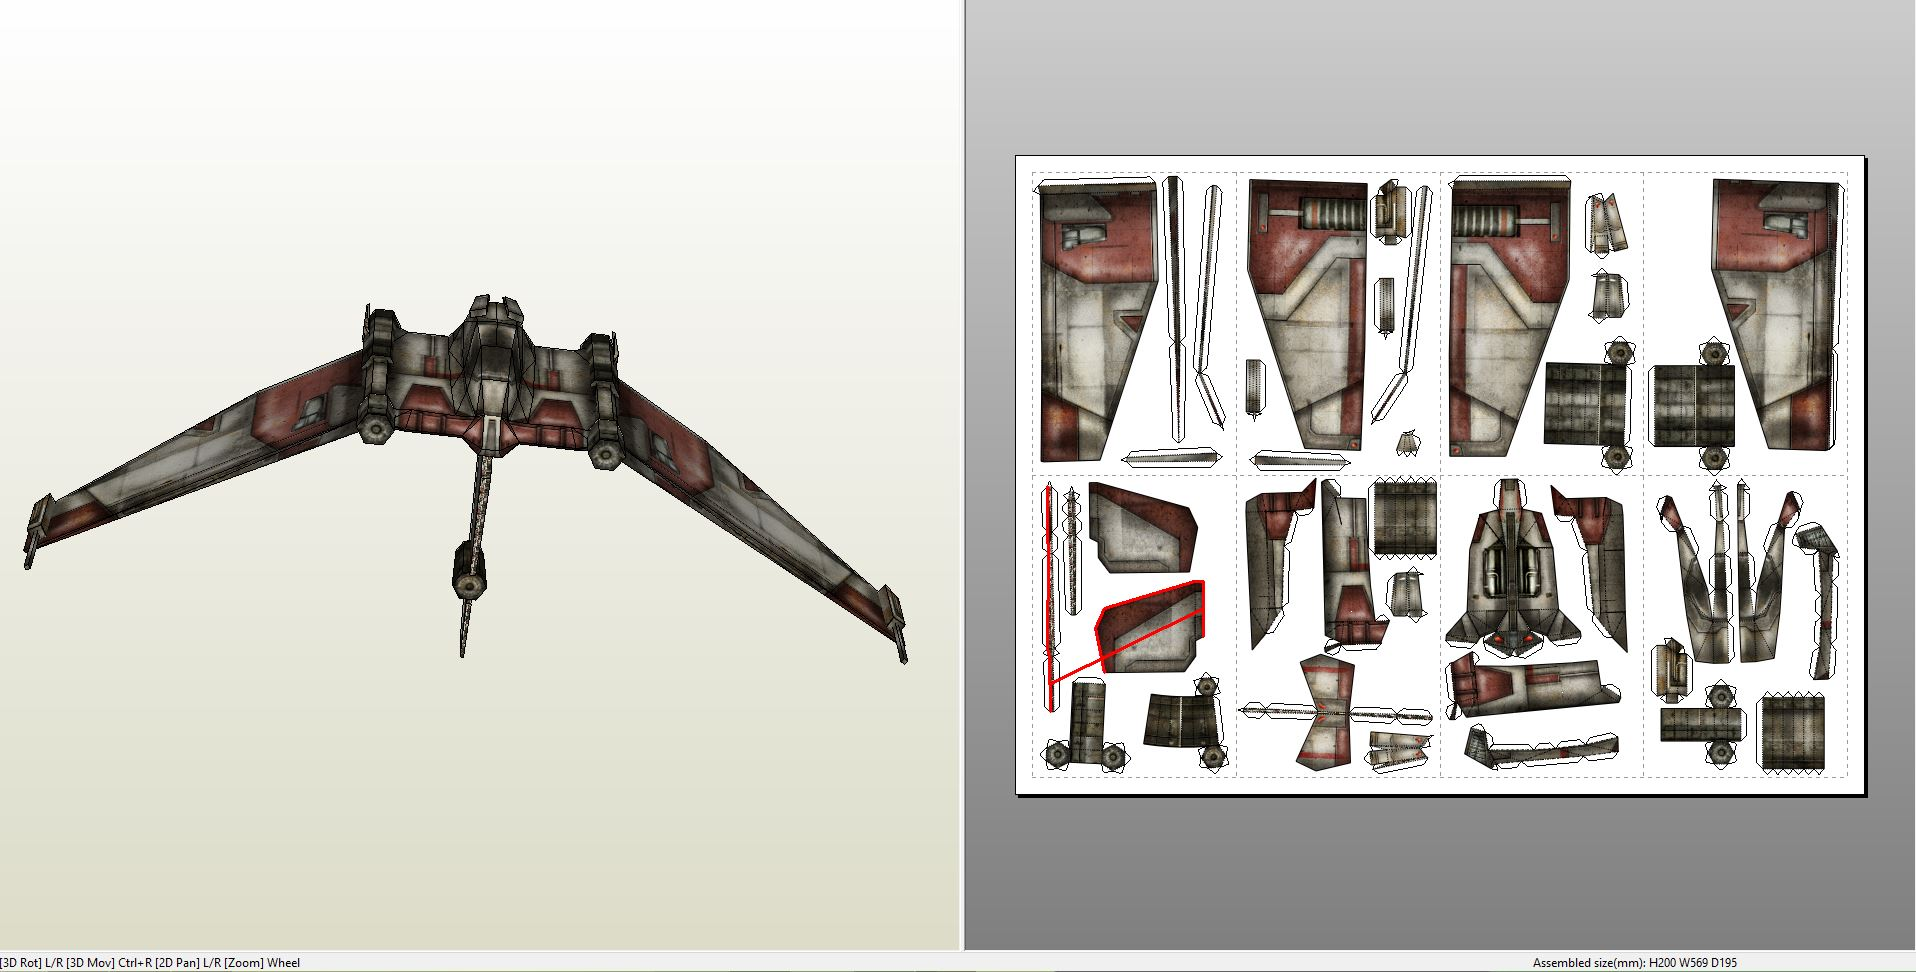 Papercraft pdo file template for star wars v19 torrent v19torrent pronofoot35fo Gallery